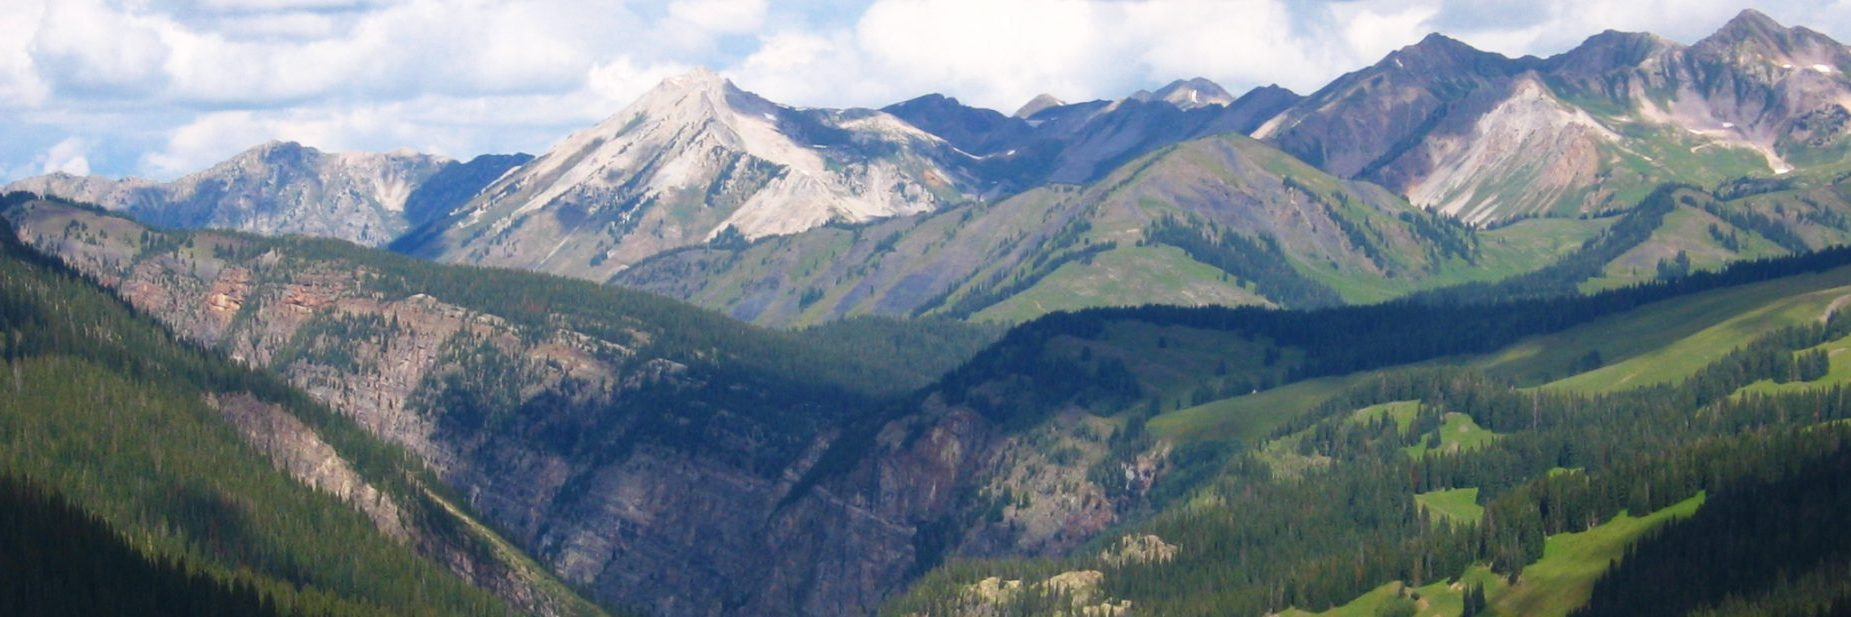 View from high in the San Juan Range, Colorado Trail, advanced mountain bike tour